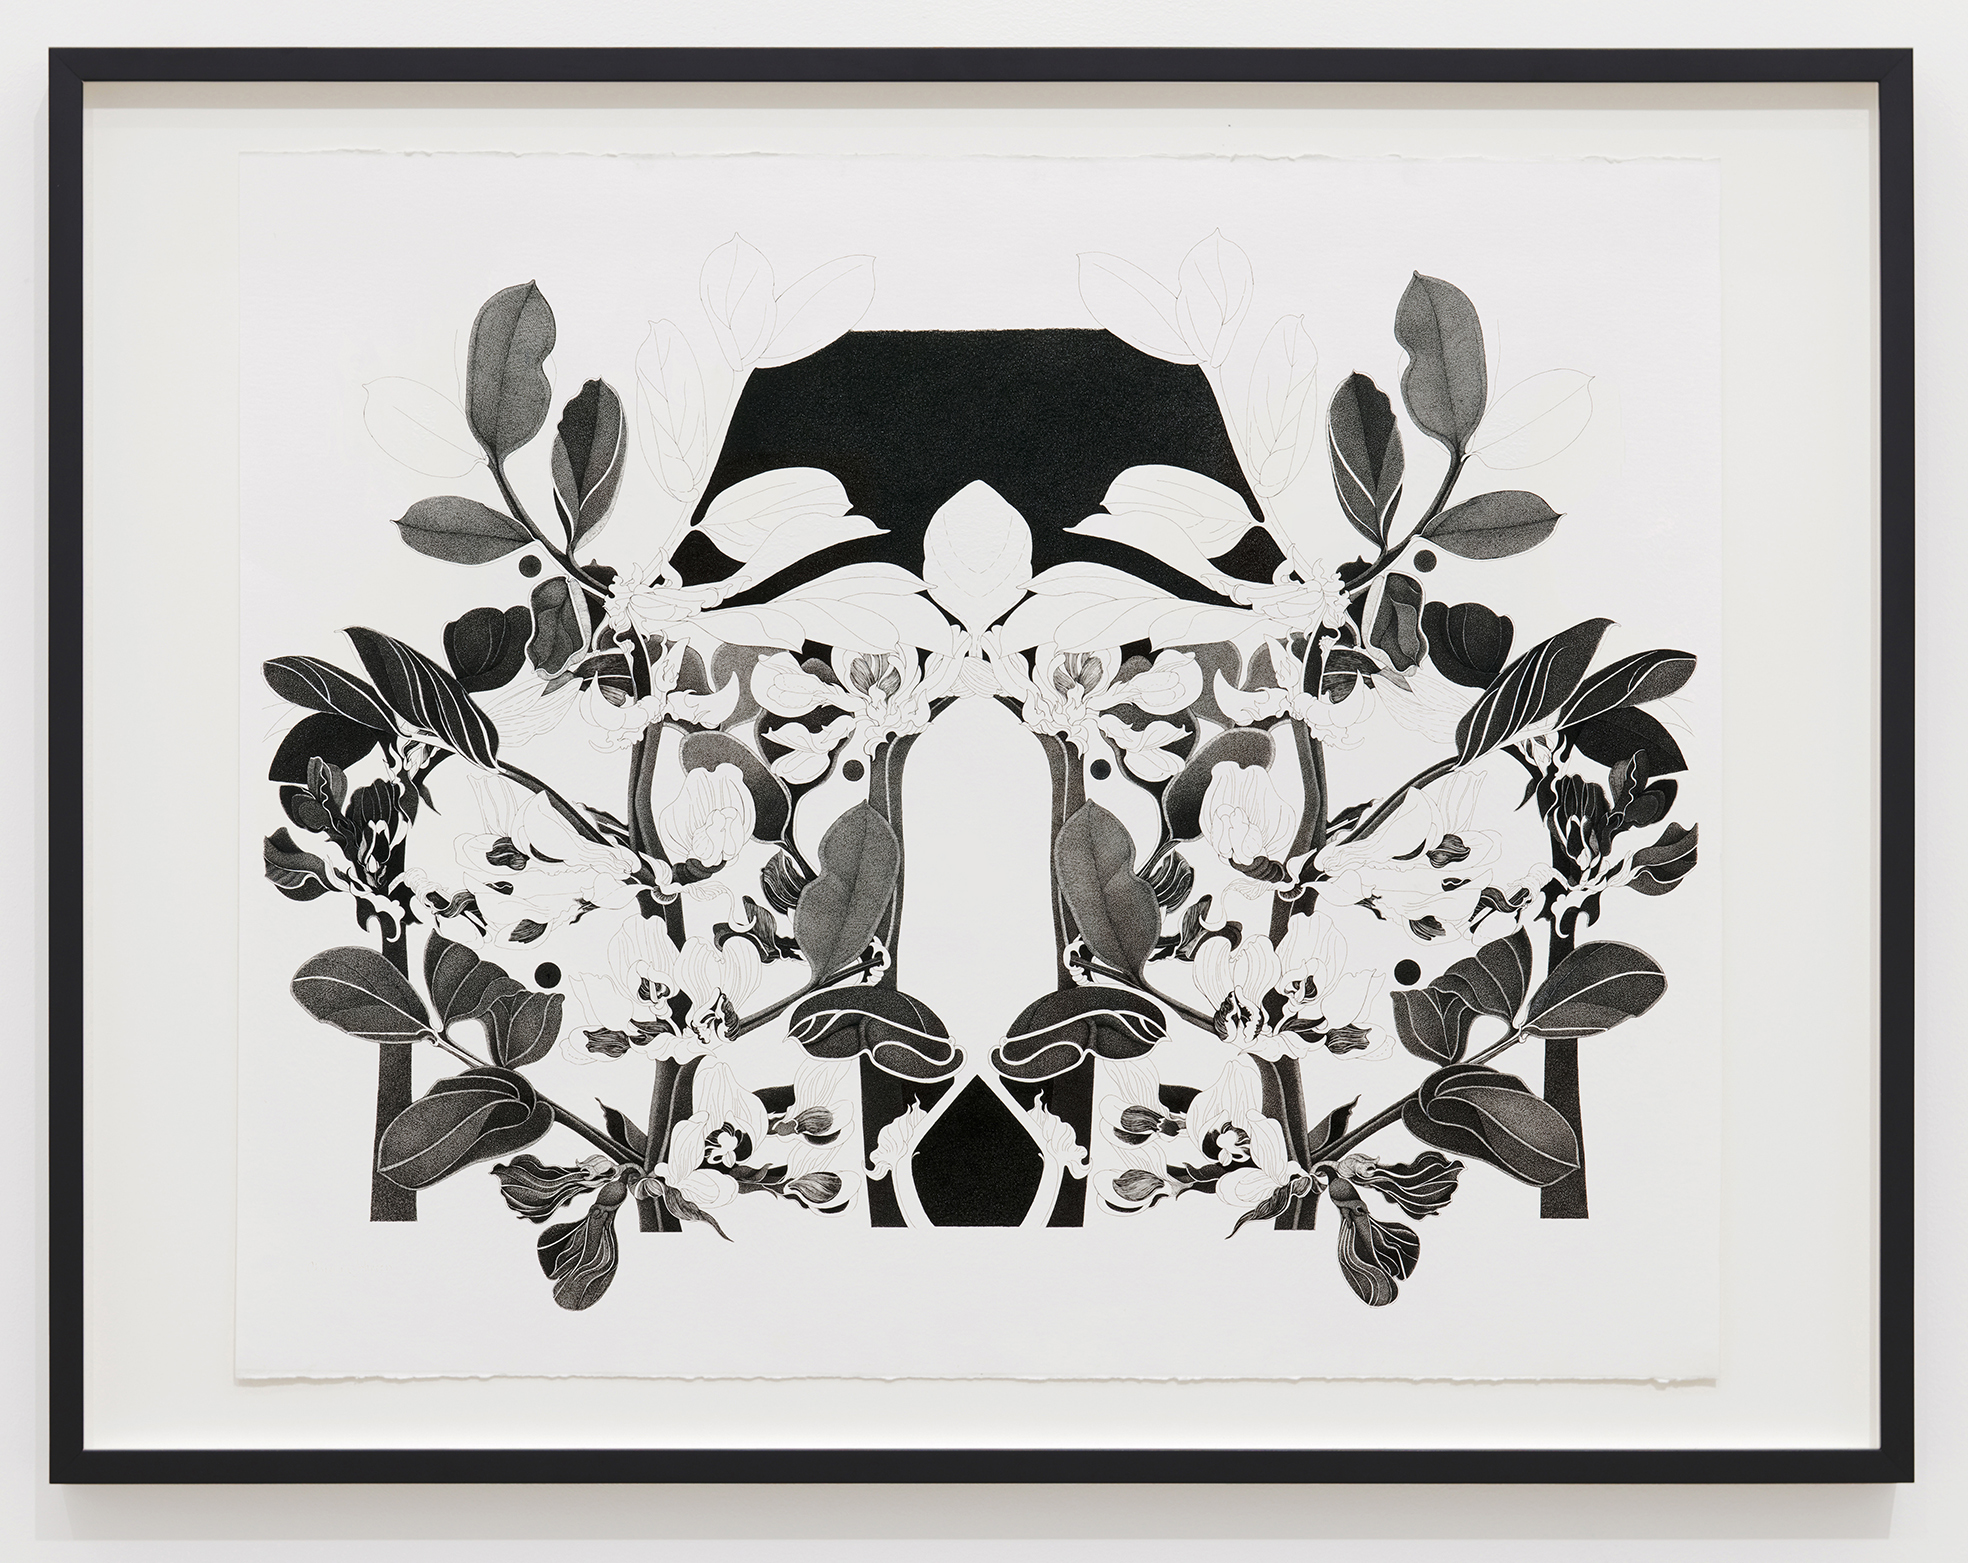 Charmian Johnson, not titled, 1978–80, ink and graphite on paper, 26 x 34 in. (65 x 85 cm) by